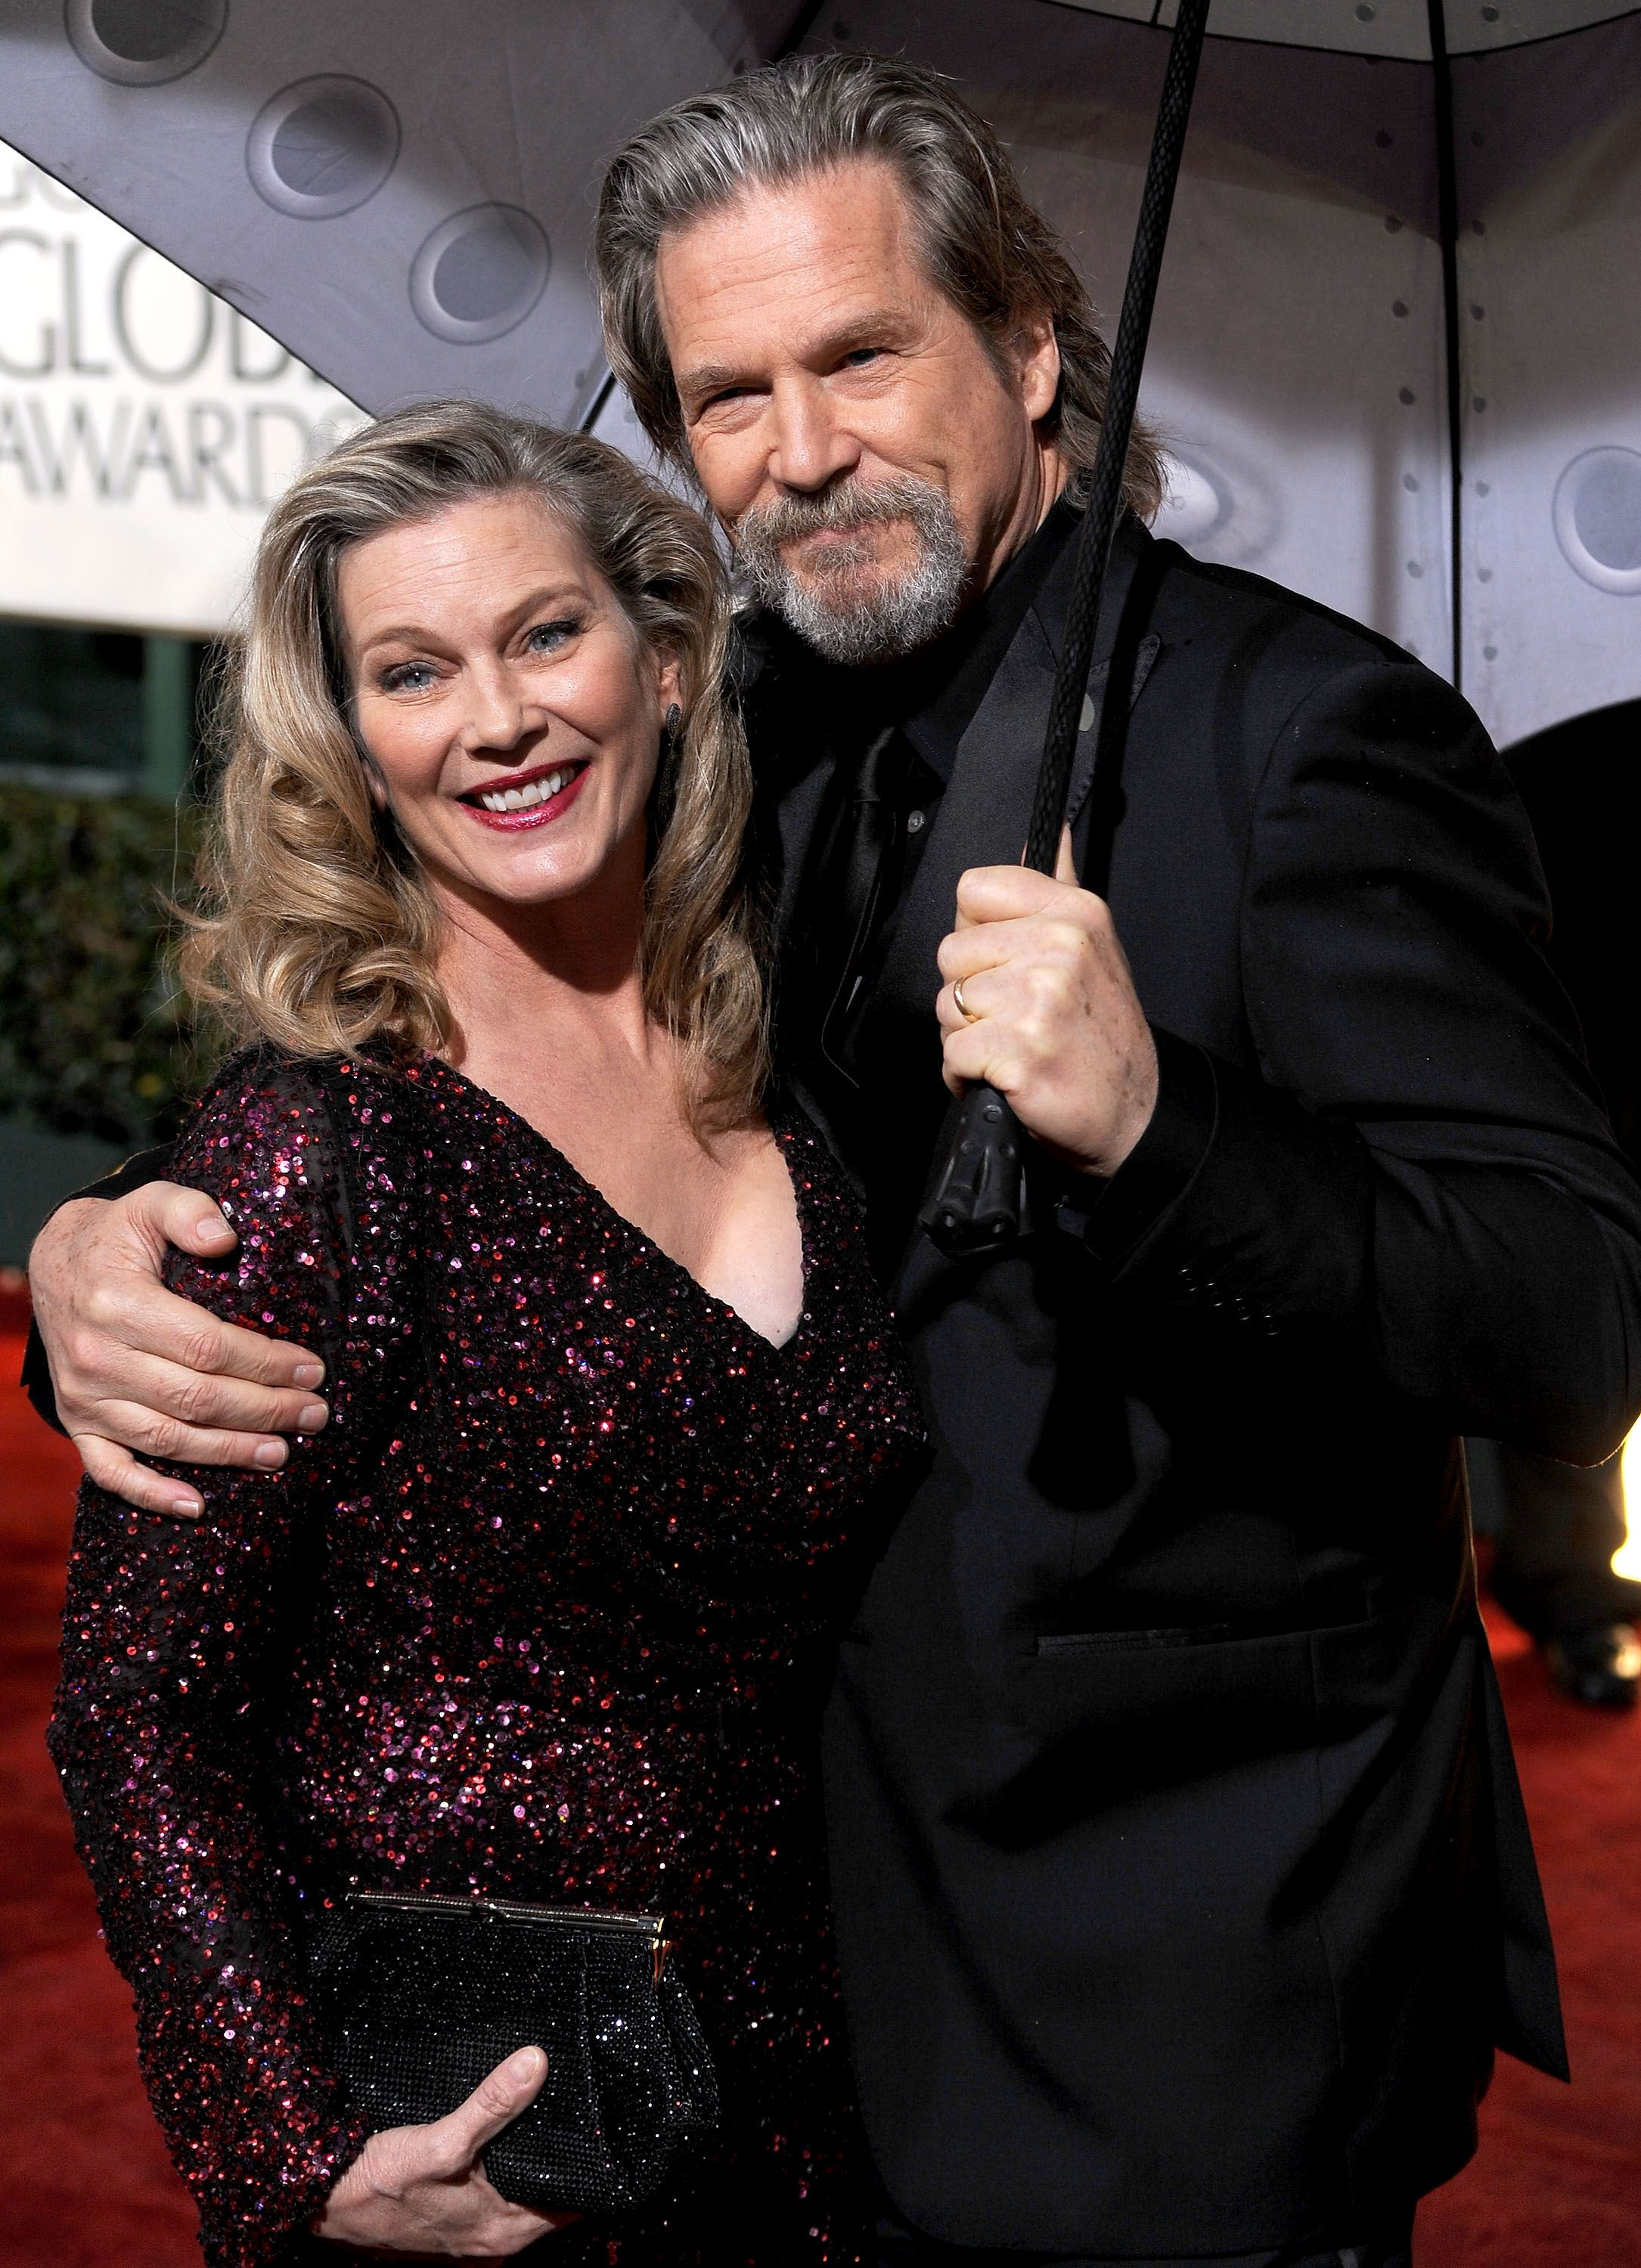 Susan Geston and actor Jeff Bridges at the 67th Annual Golden Globe Awards held at The Beverly Hilton Hotel on January 17, 2010 | Photo: Getty Images